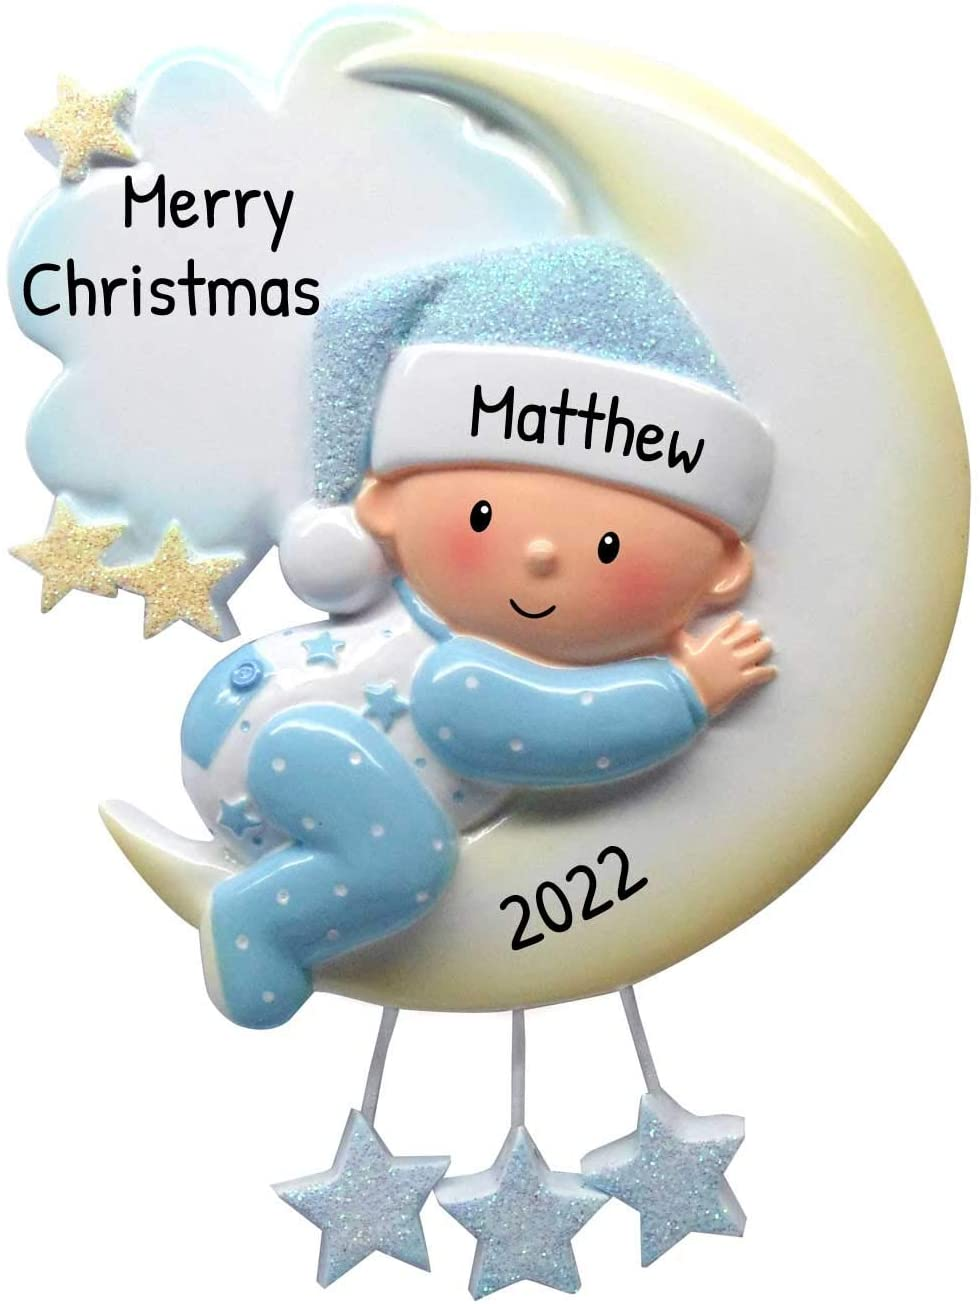 Personalized Baby on Mr. Moon Christmas Tree Ornament 2020 - Boy Pajamas Glitter Sleep Hat Hug Bed Clouds Stars First New Mom Shower Gift Grand-Son Kid Pjs Mobile Year - Free Customization (Blue)